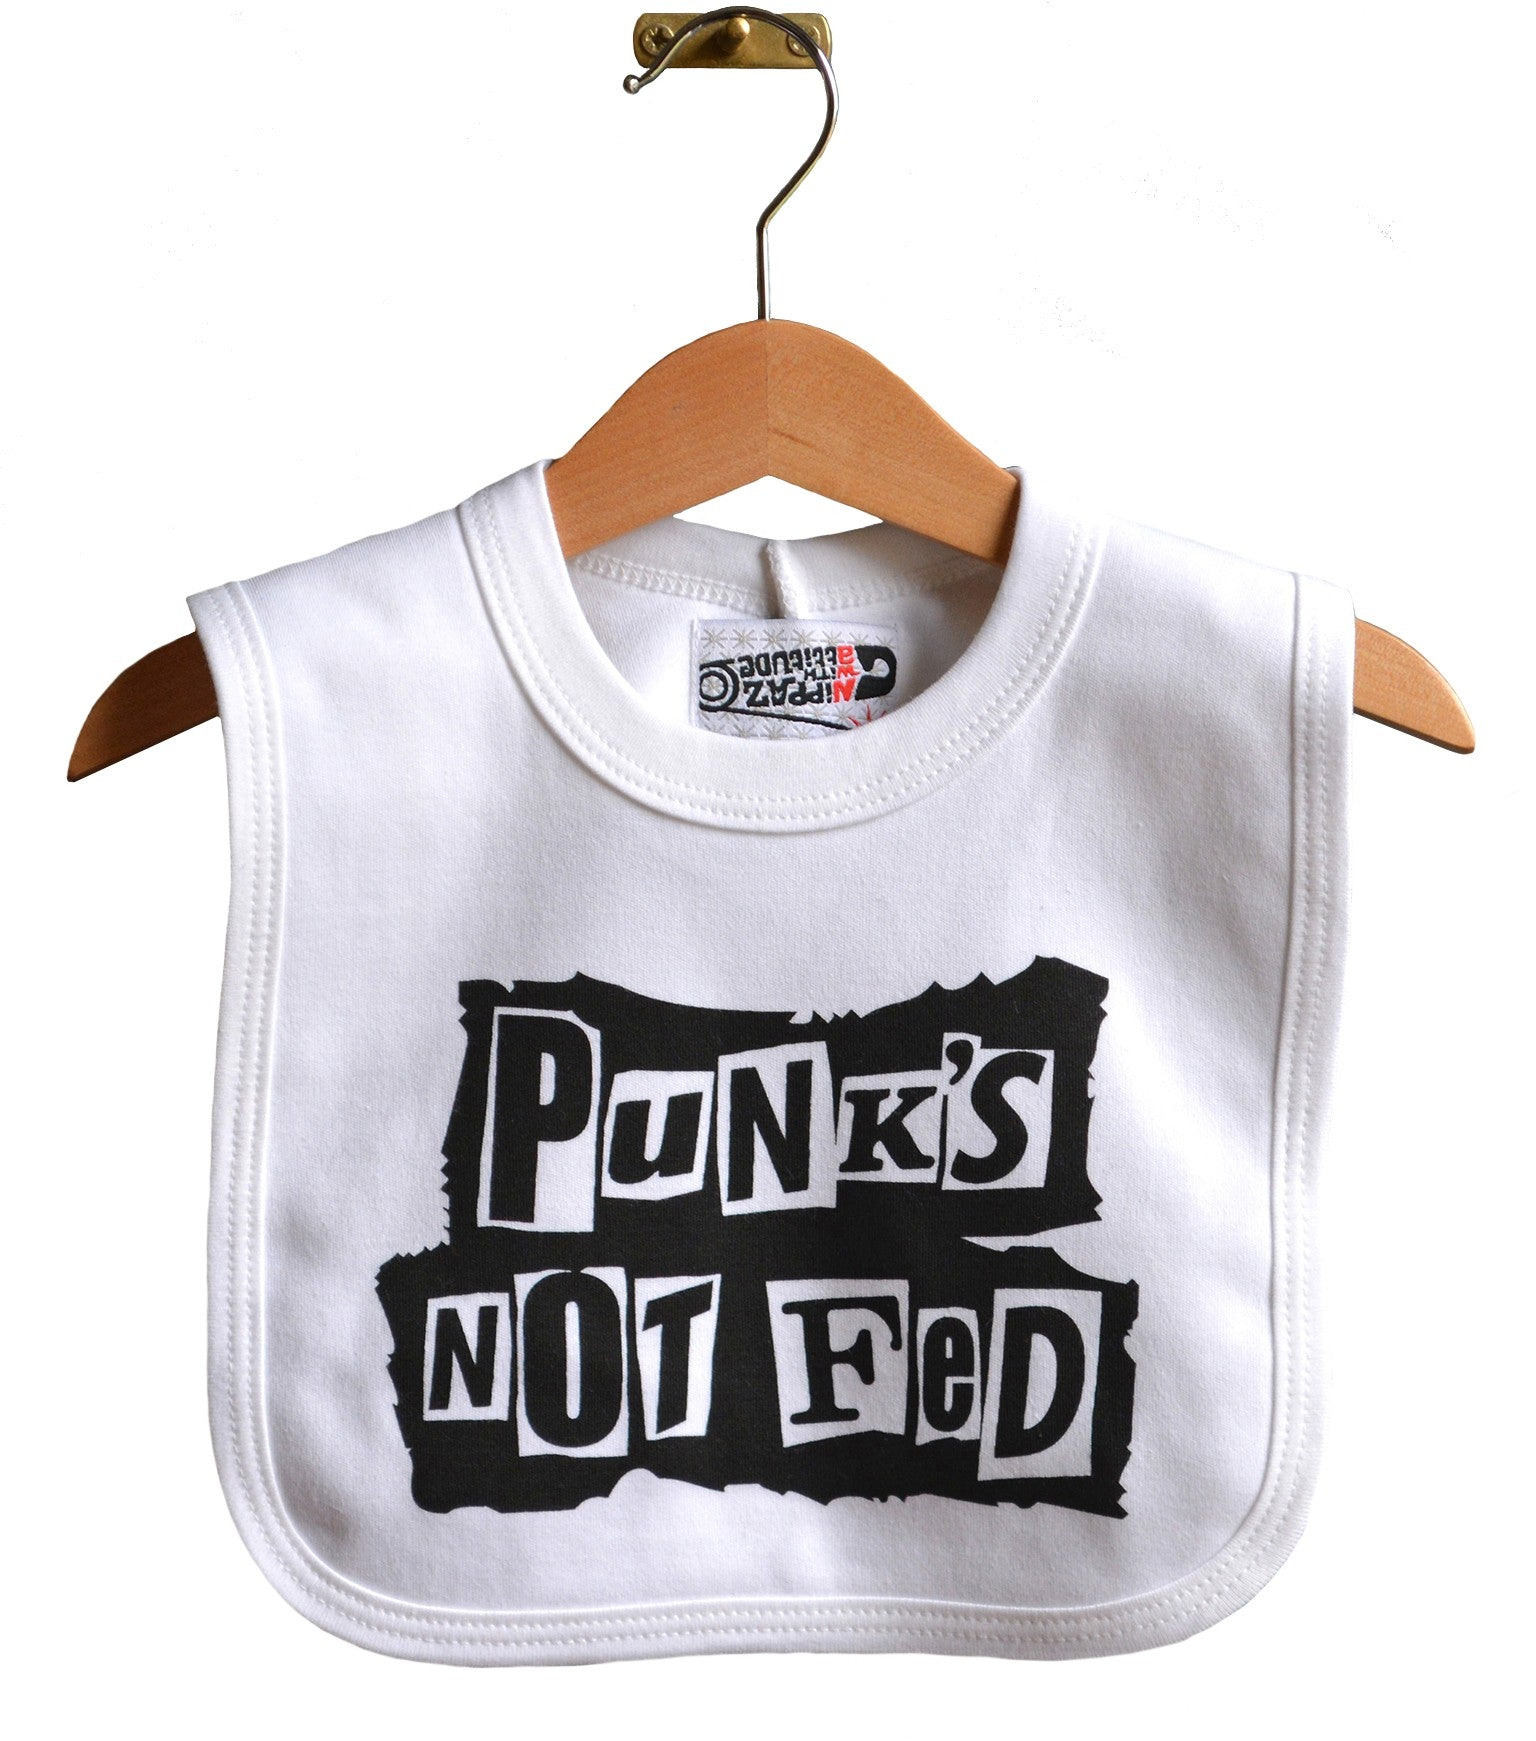 PUNK'S NOT FED BIB N.W.A